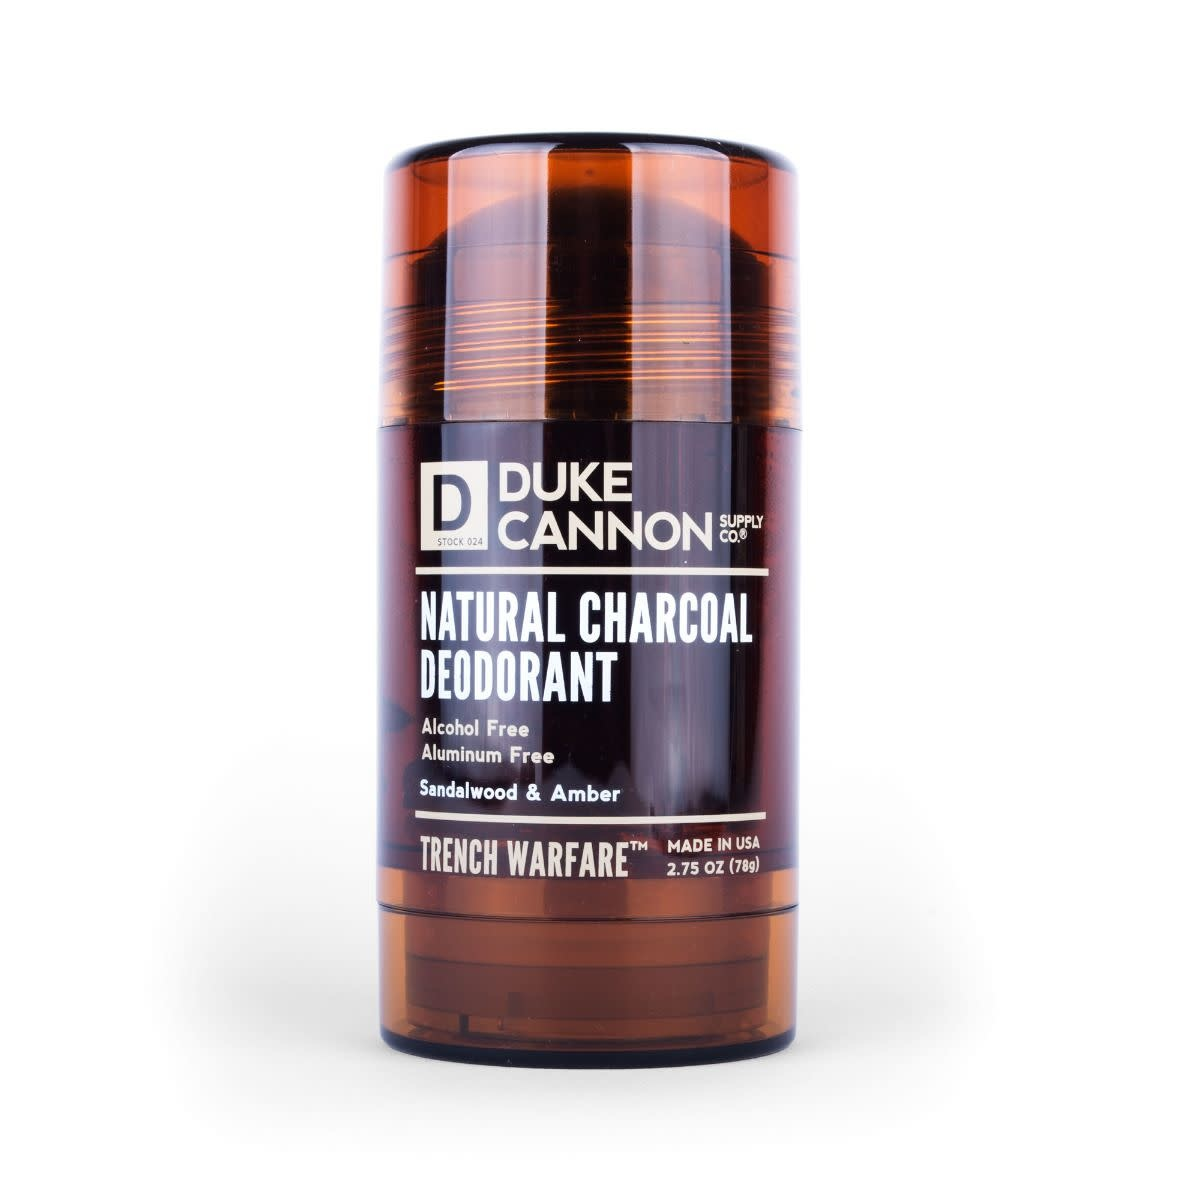 Duke Cannon Trench Warfare Sandalwood & Amber Natural Charcoal Deodorant